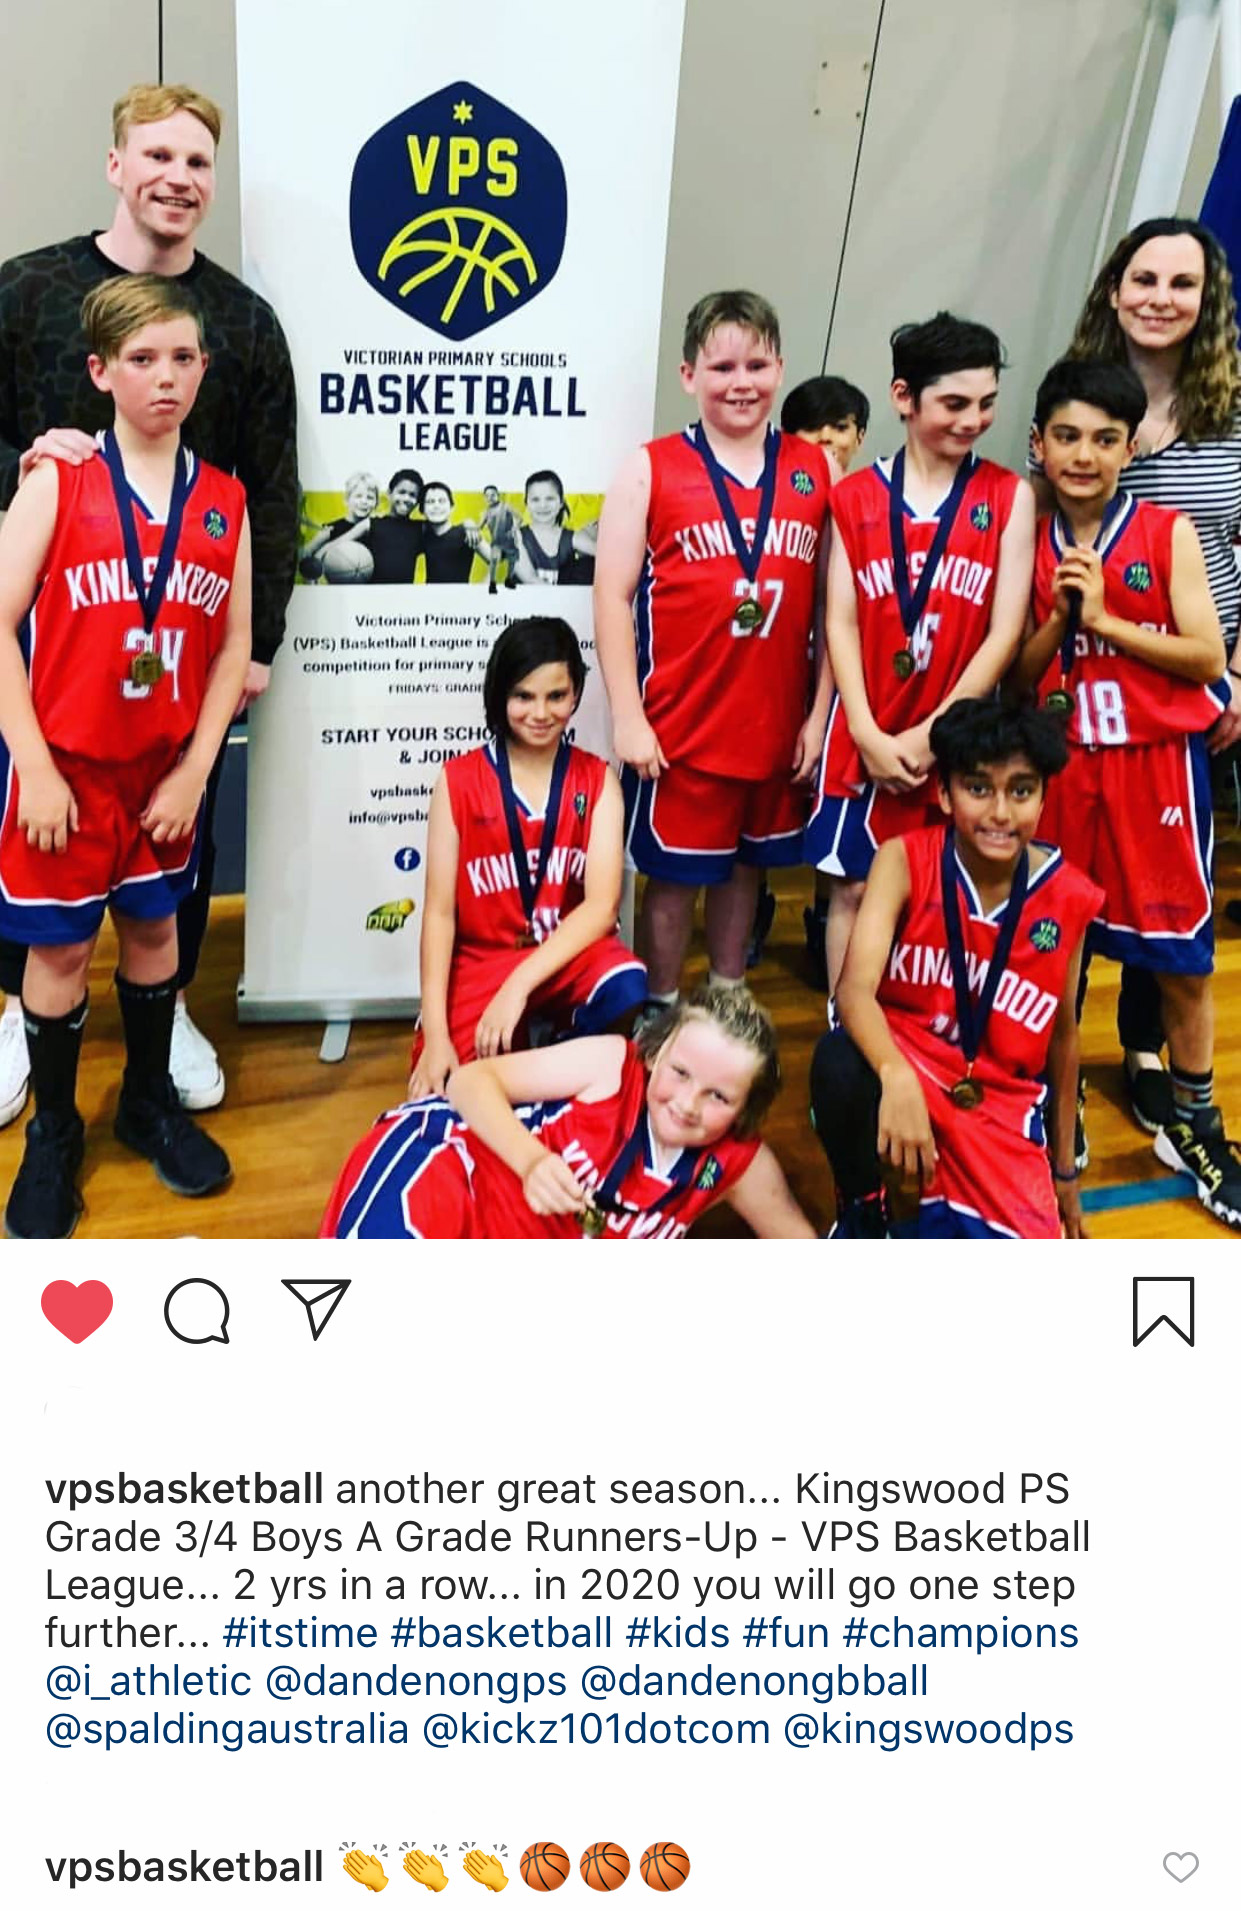 kingswood ps kings 2019